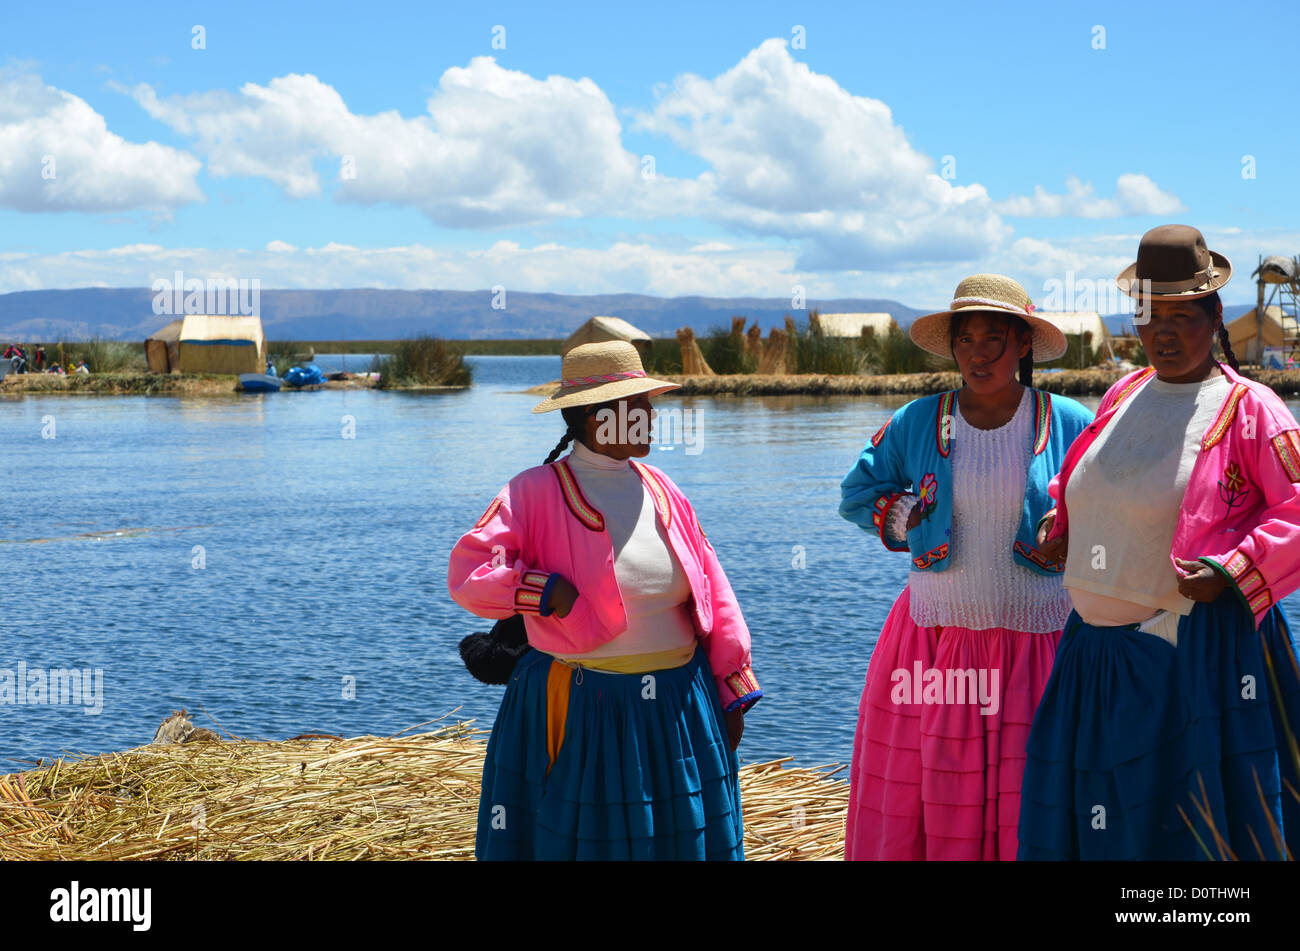 Ladies of the Uros Islands, Lake Titicaca, Puno, Peru. - Stock Image